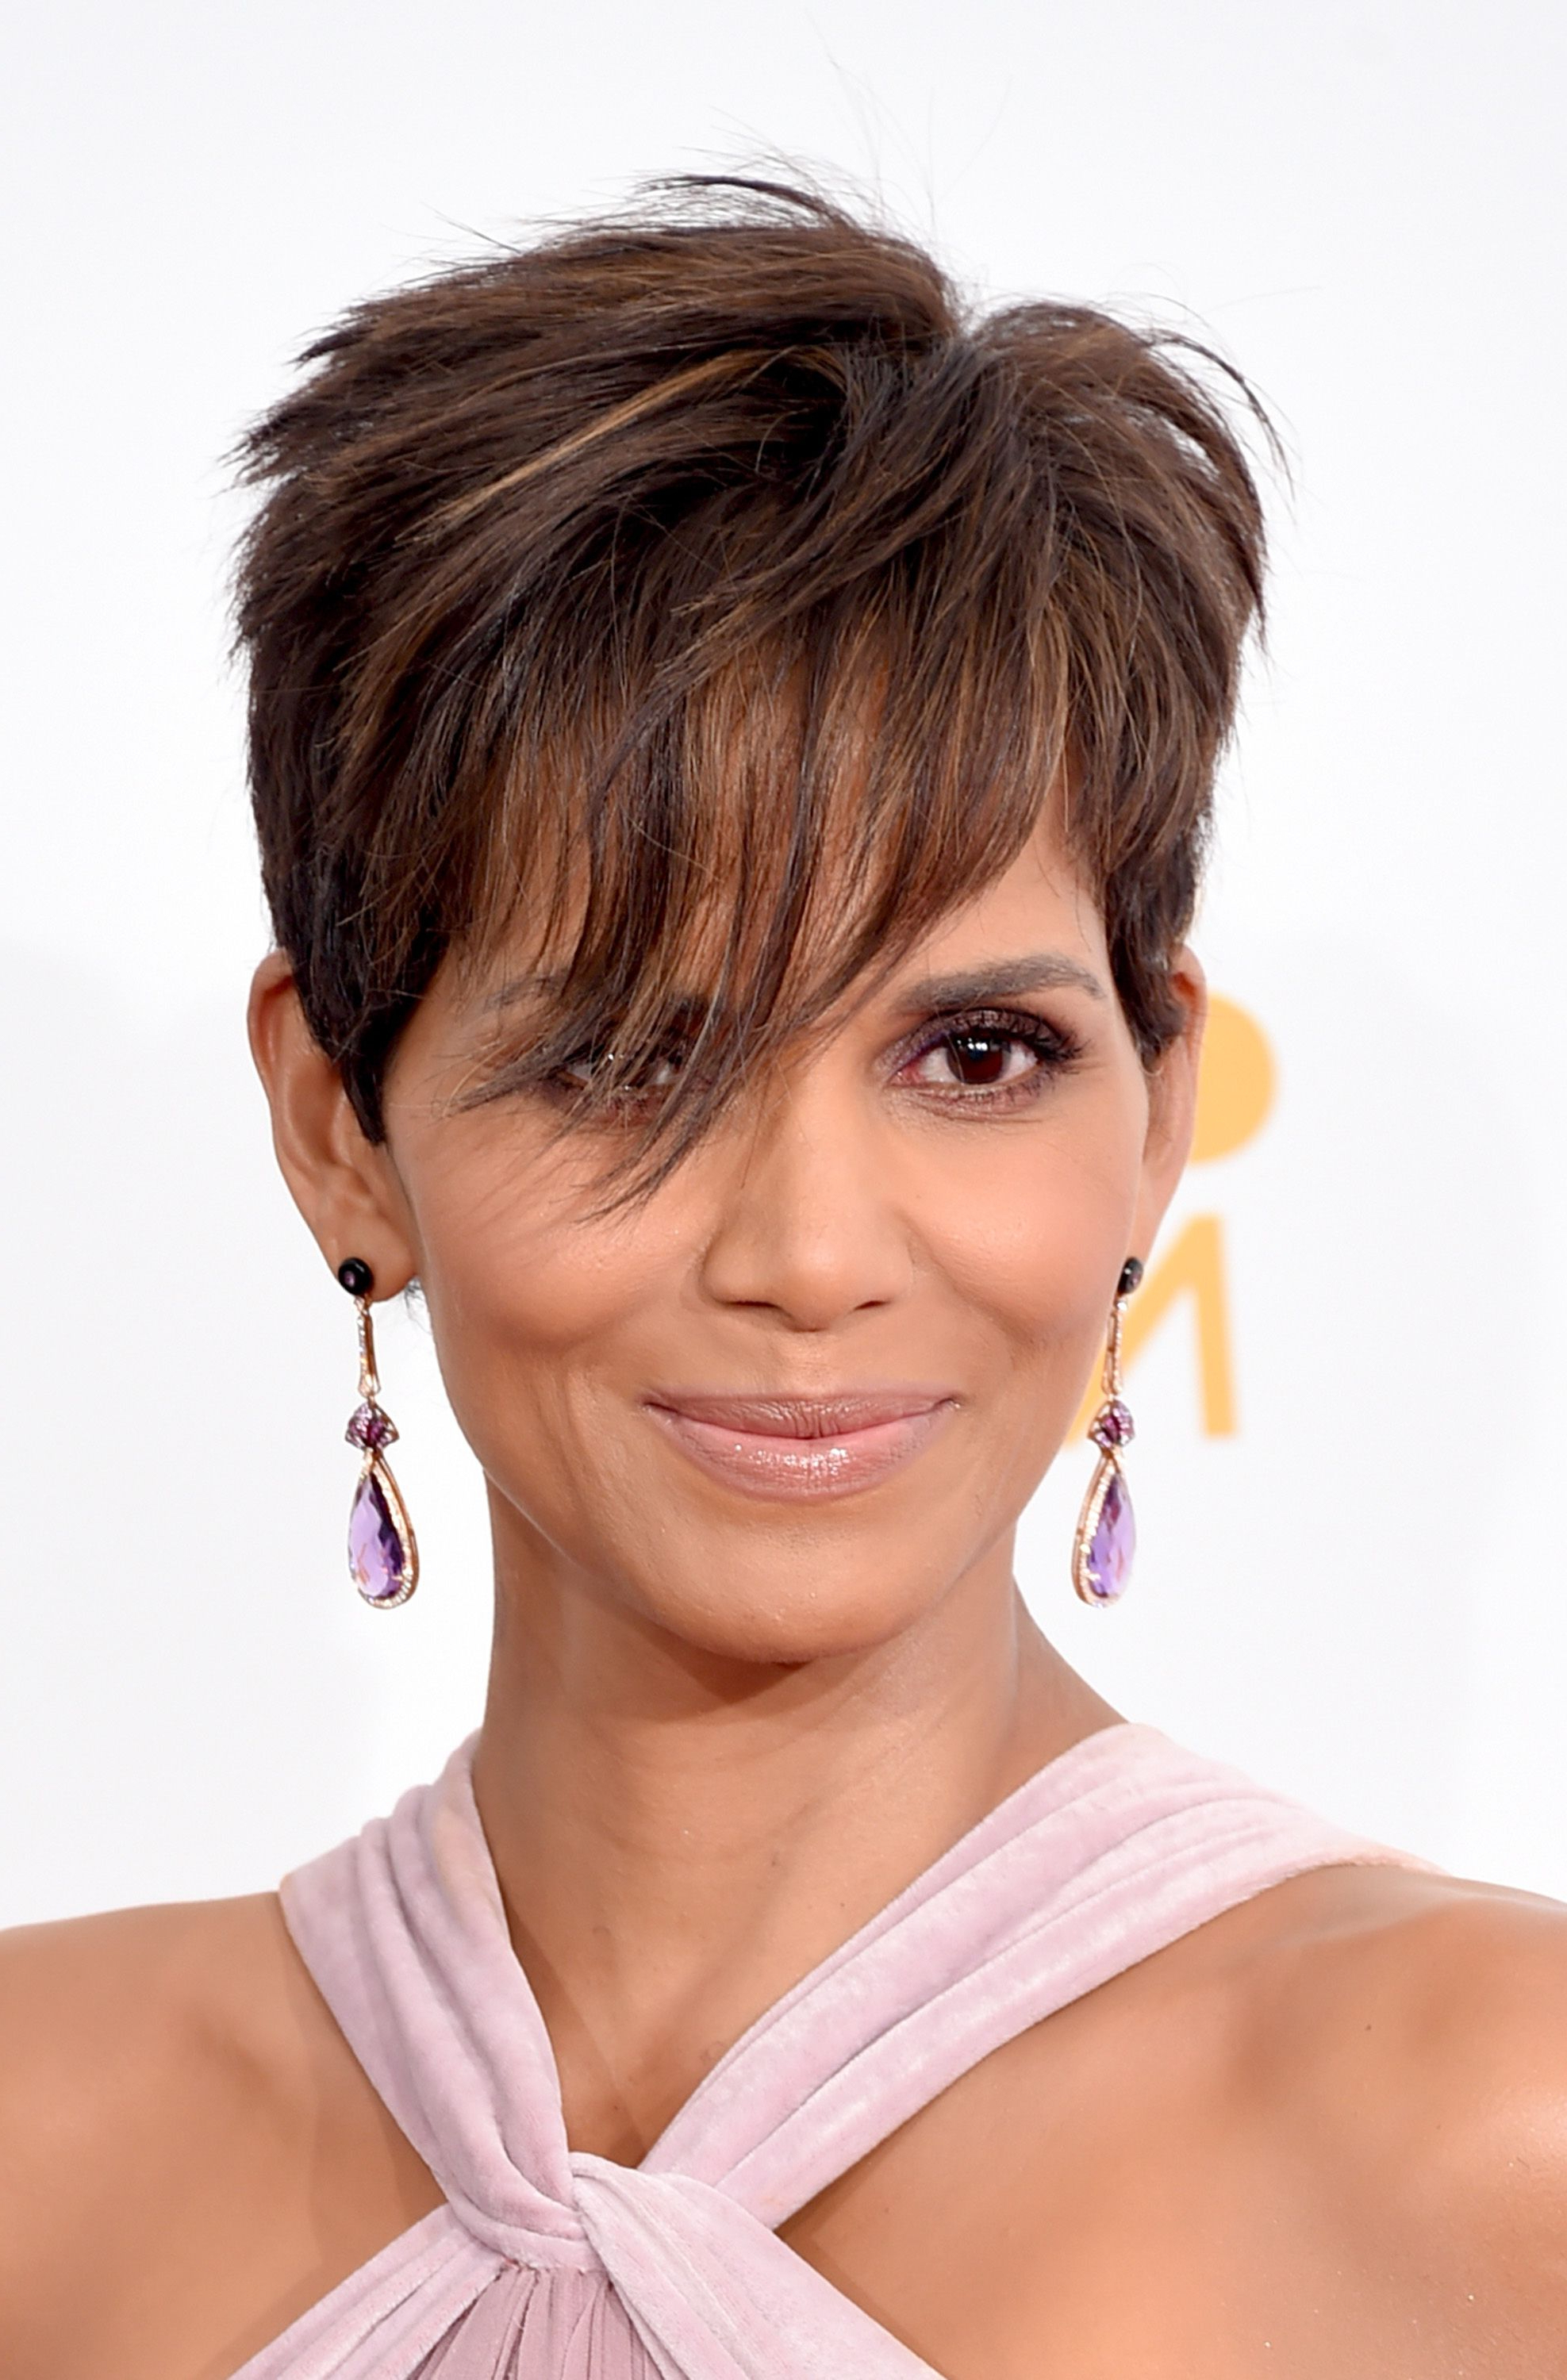 40 Best Short Pixie Cut Hairstyles 2019 – Cute Pixie In Chic And Elegant Pixie Haircuts (View 12 of 20)